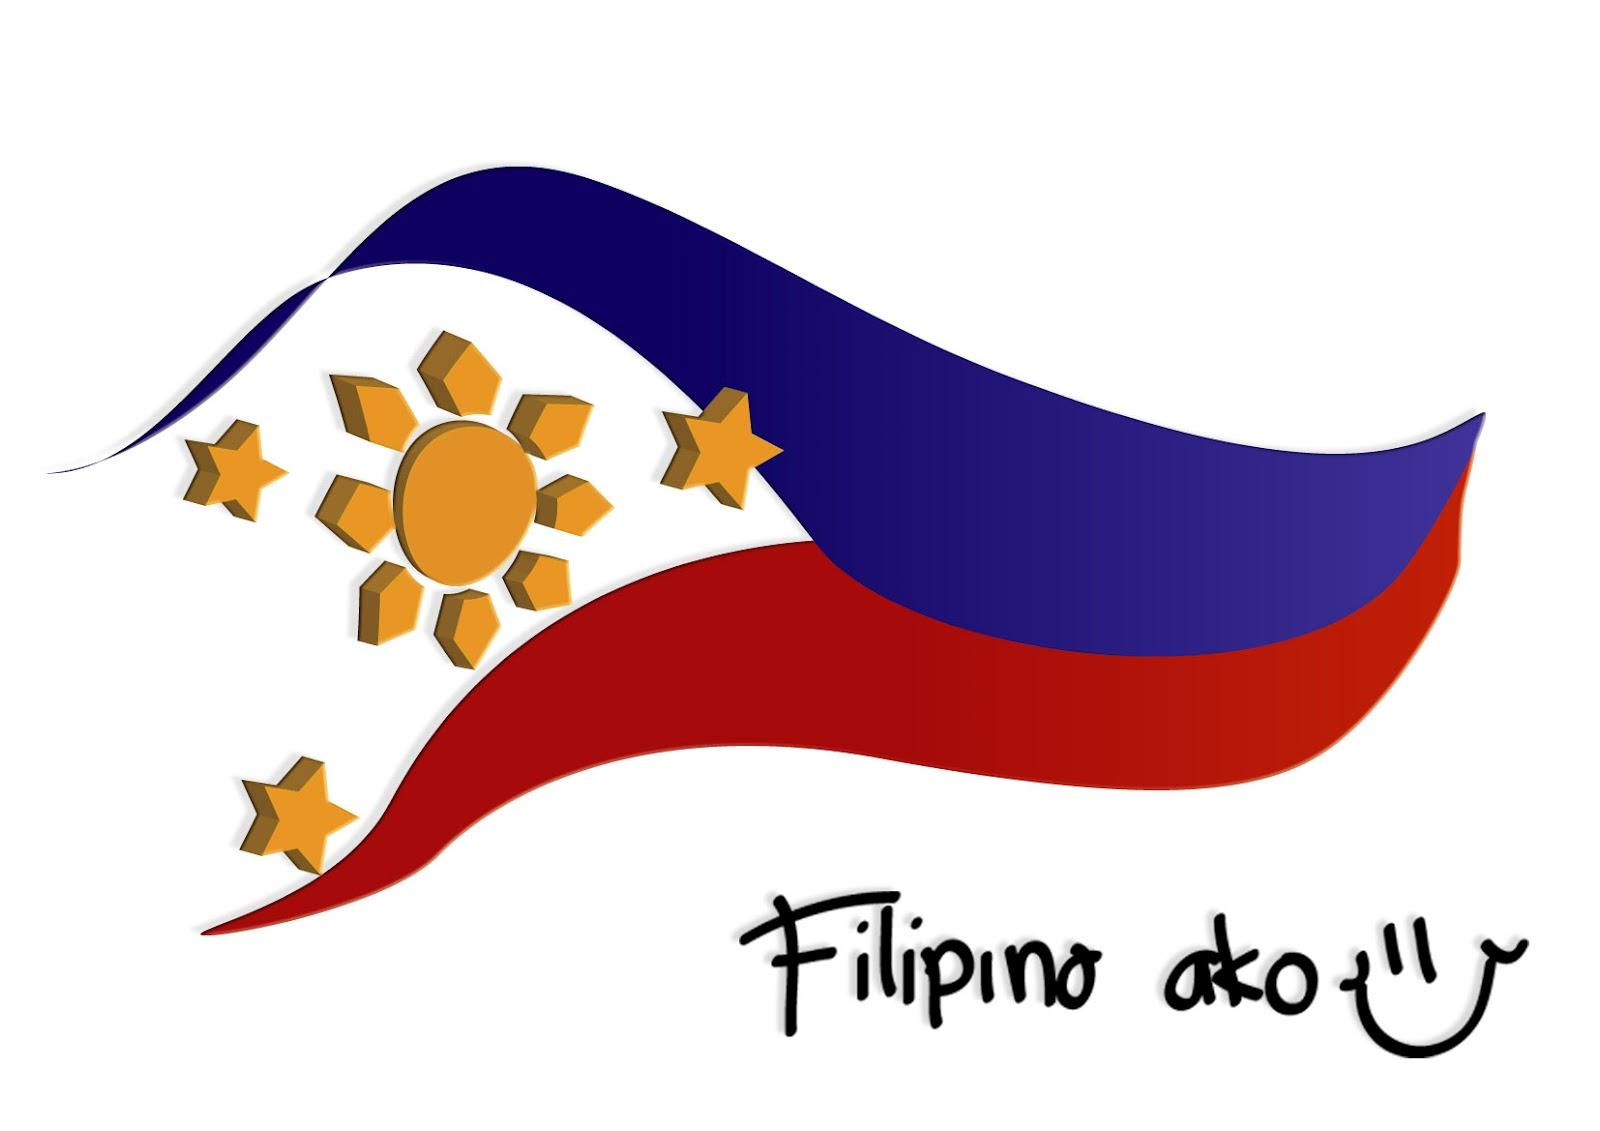 i am a filipino a proud I am a filipino i am a filipino-- with the ocean's breath, with the forest's hair, with suntanned skin, with sight contoured by rain allured by distant stars.